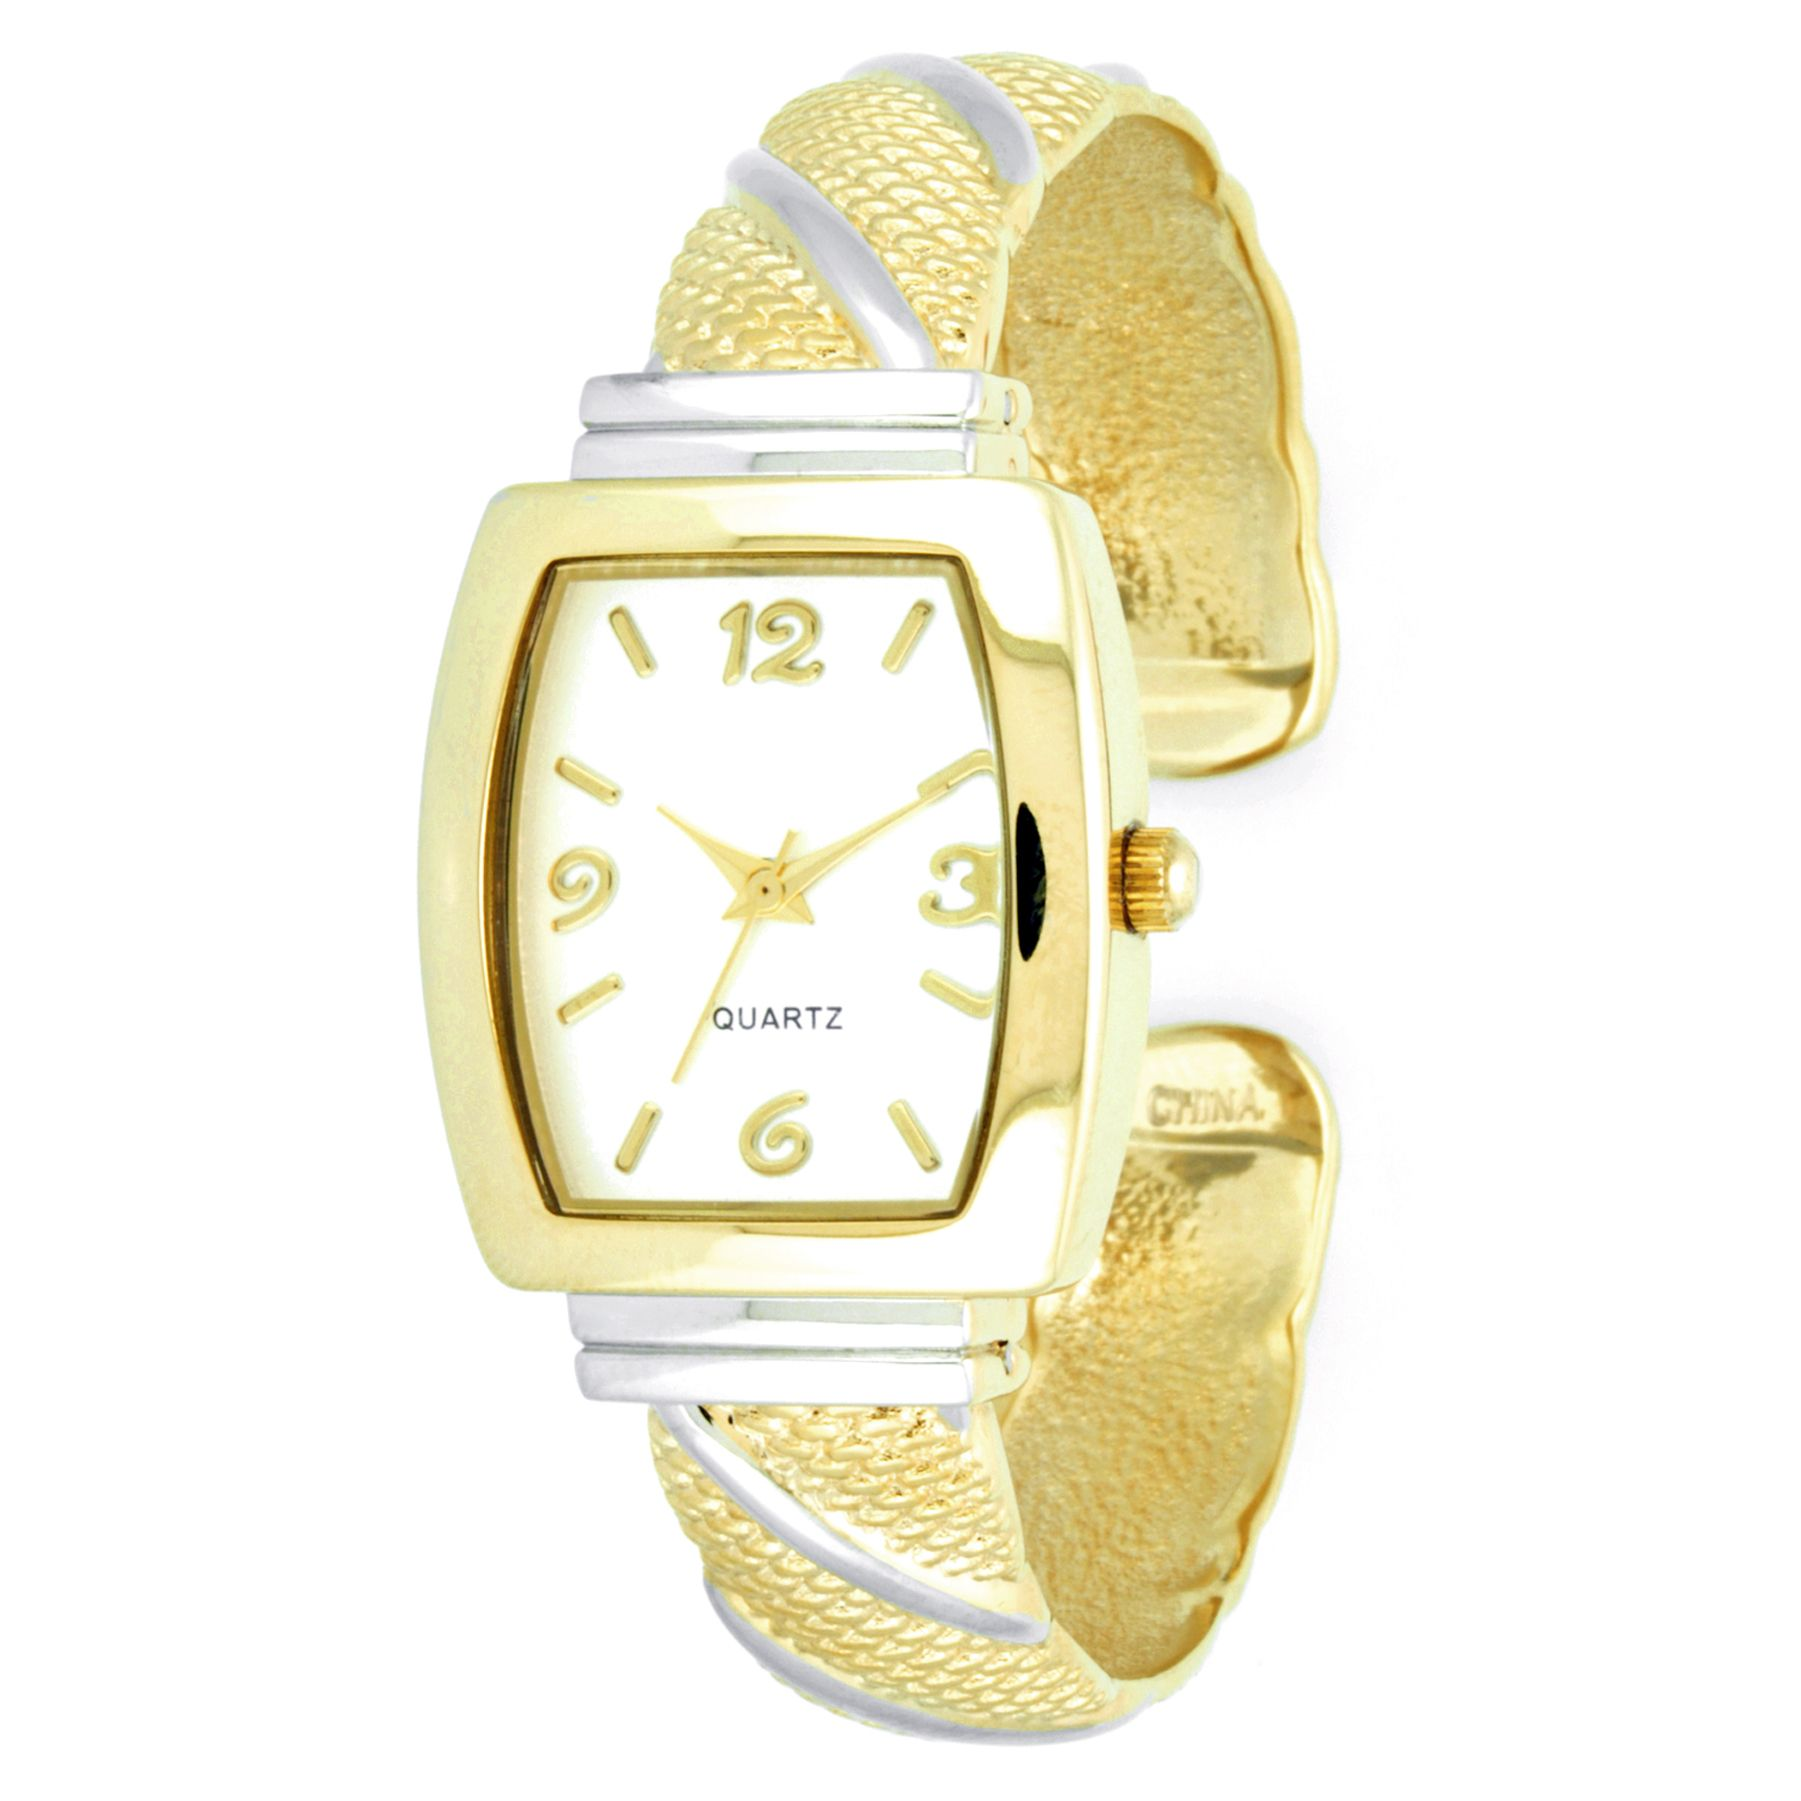 Ladies' Watch with Two-Tone Cushion Case,